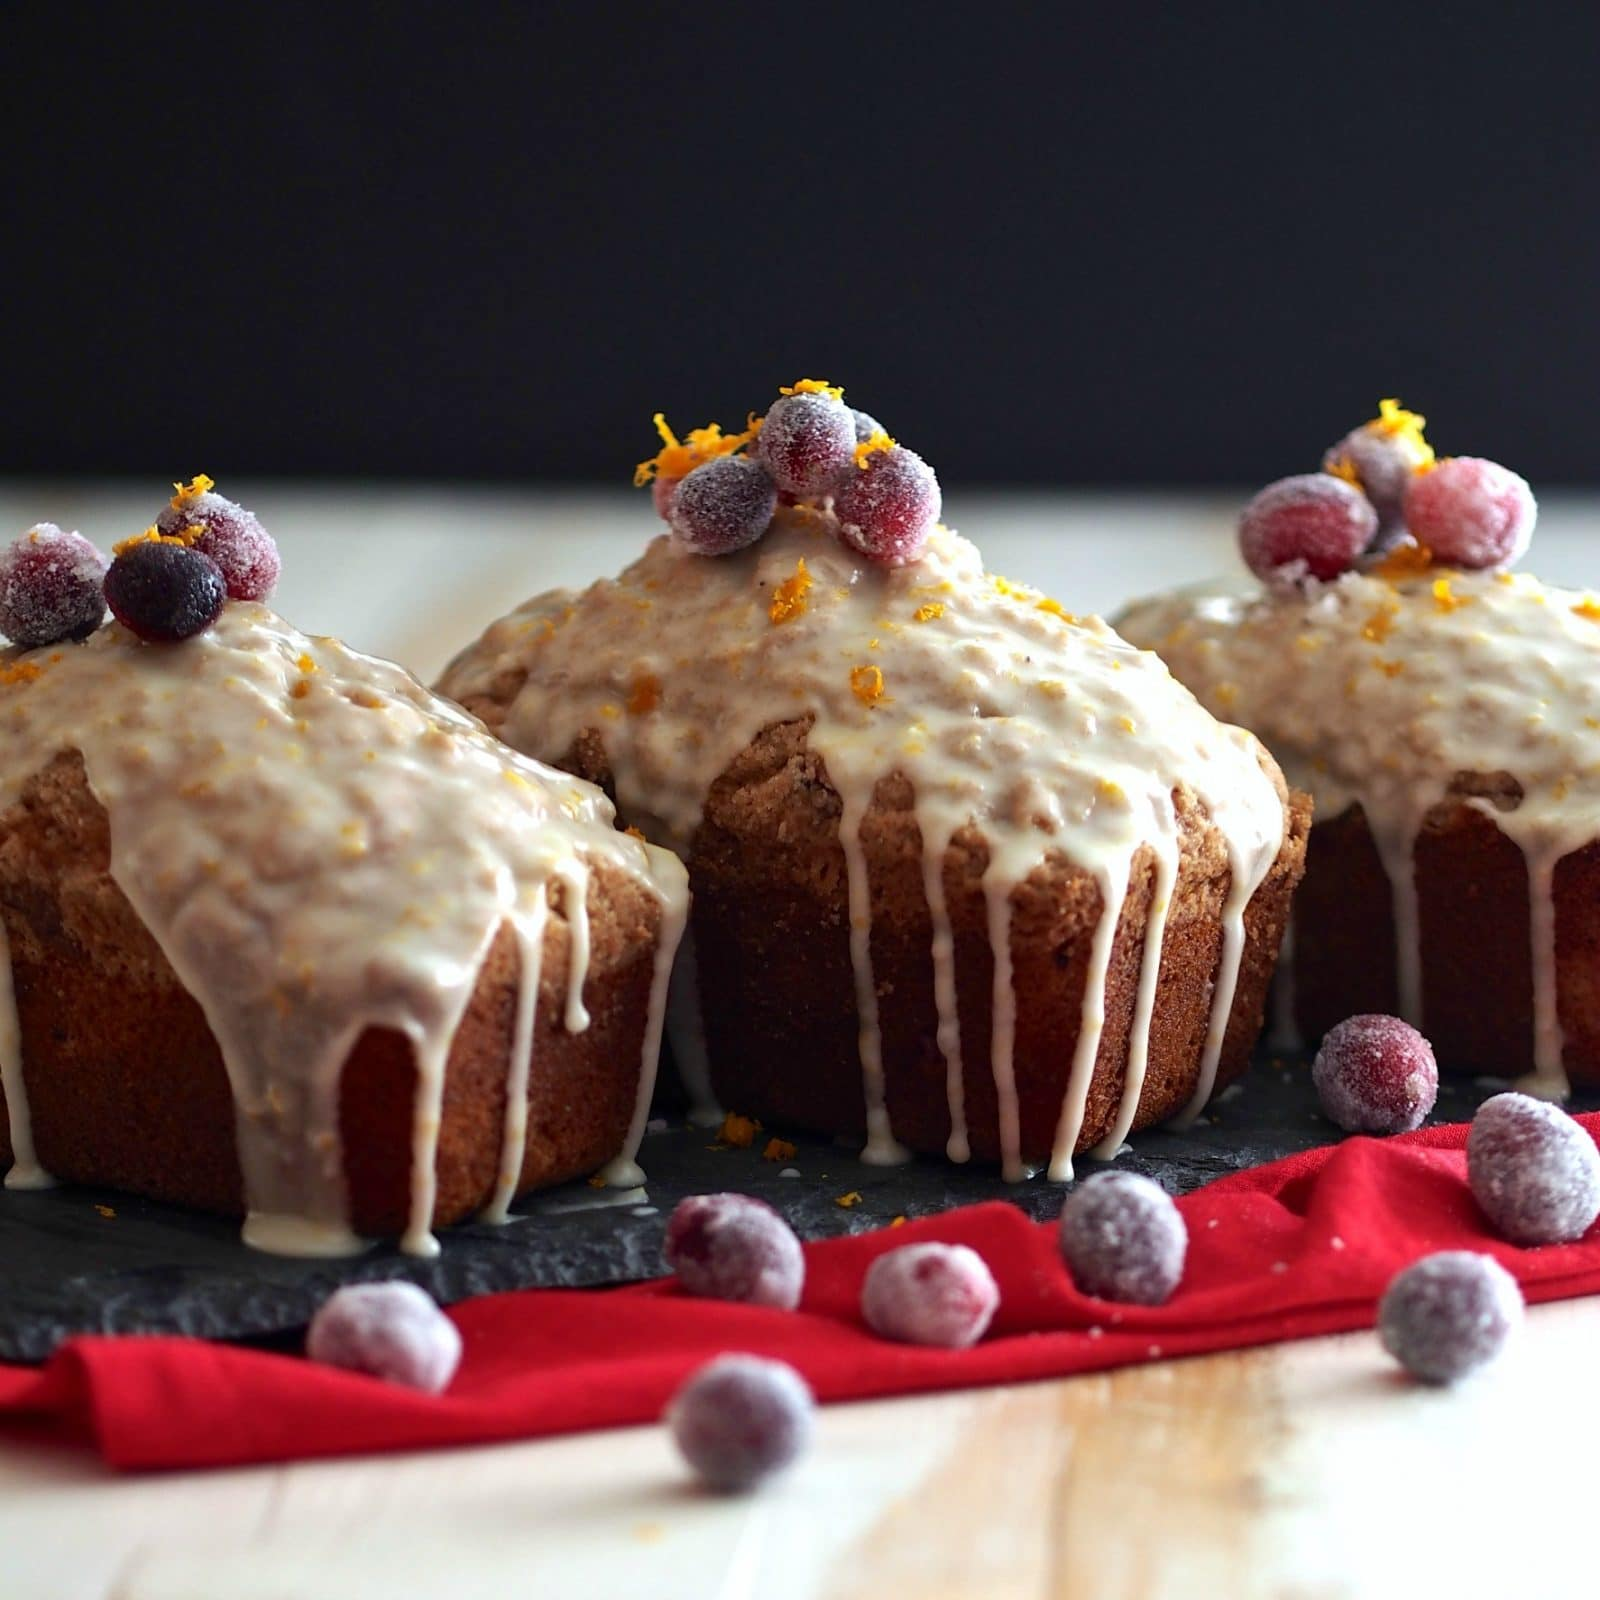 Orange-Glazed Cranberry Bread has the perfect blend of flavors: citrus from the orange, tartness from cranberries & a little hint of spice. Perfect. Simply Sated